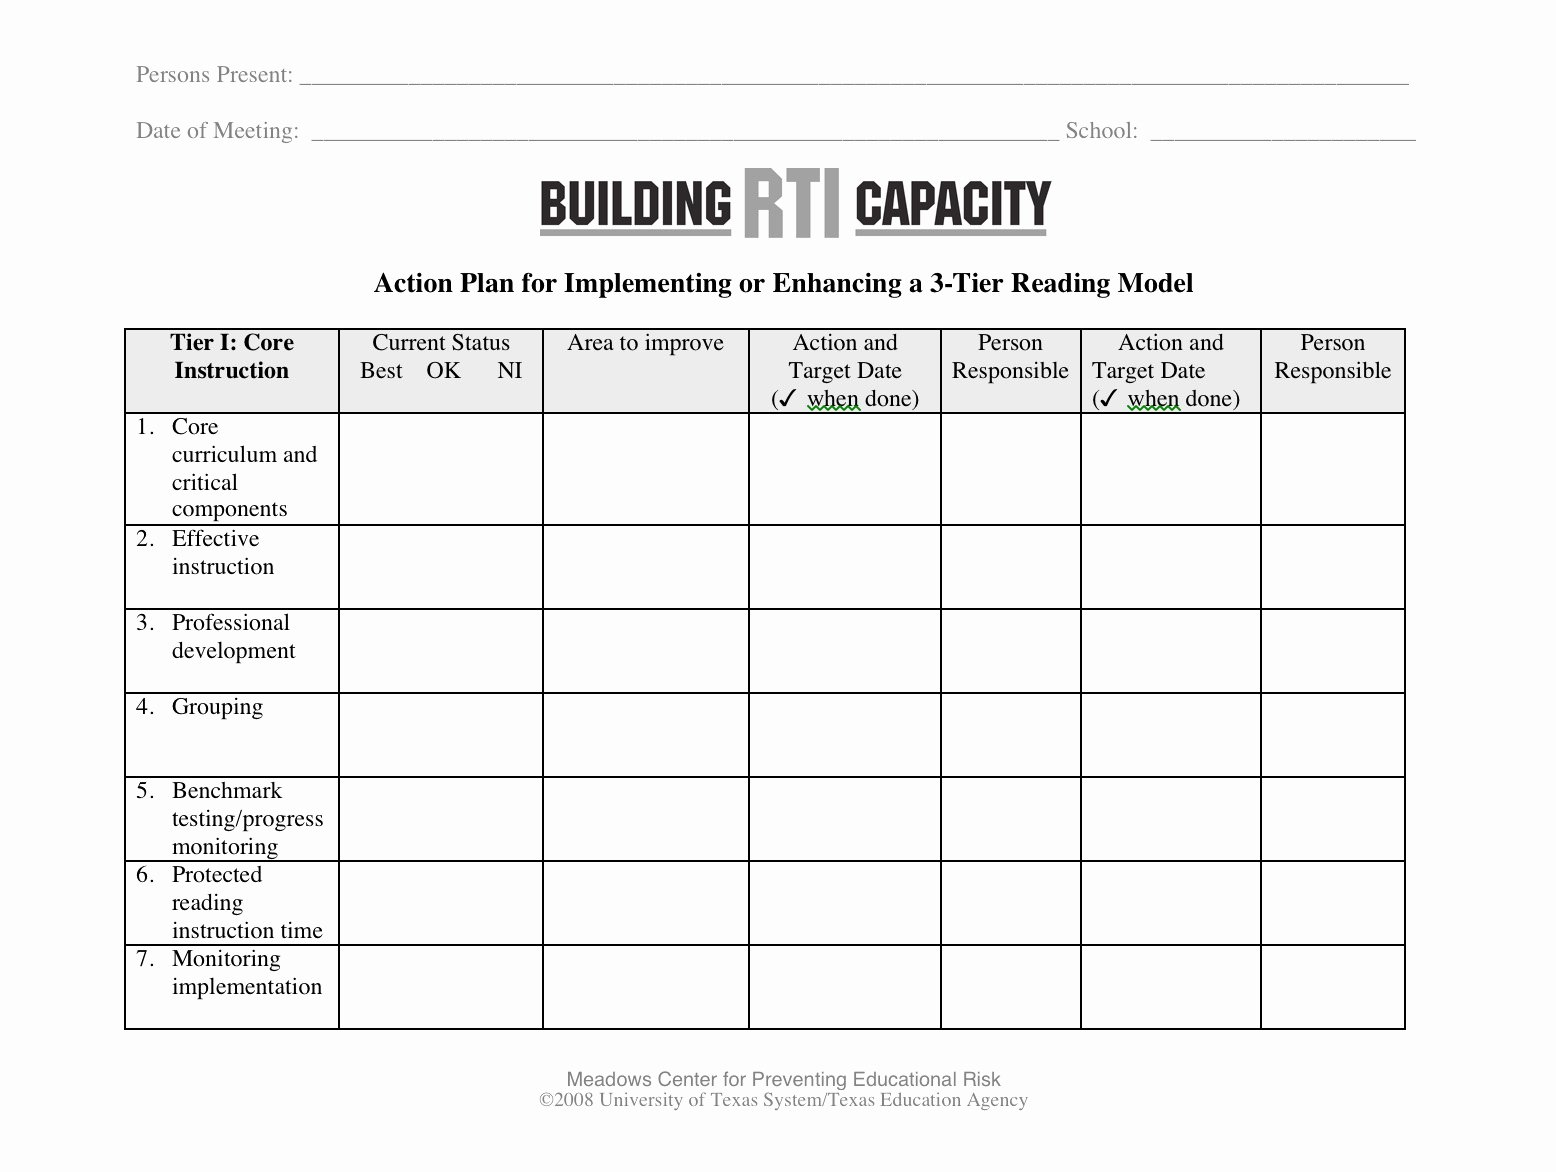 Leadership Action Plan Example Best Of 3 Tier Reading Model Action Plan